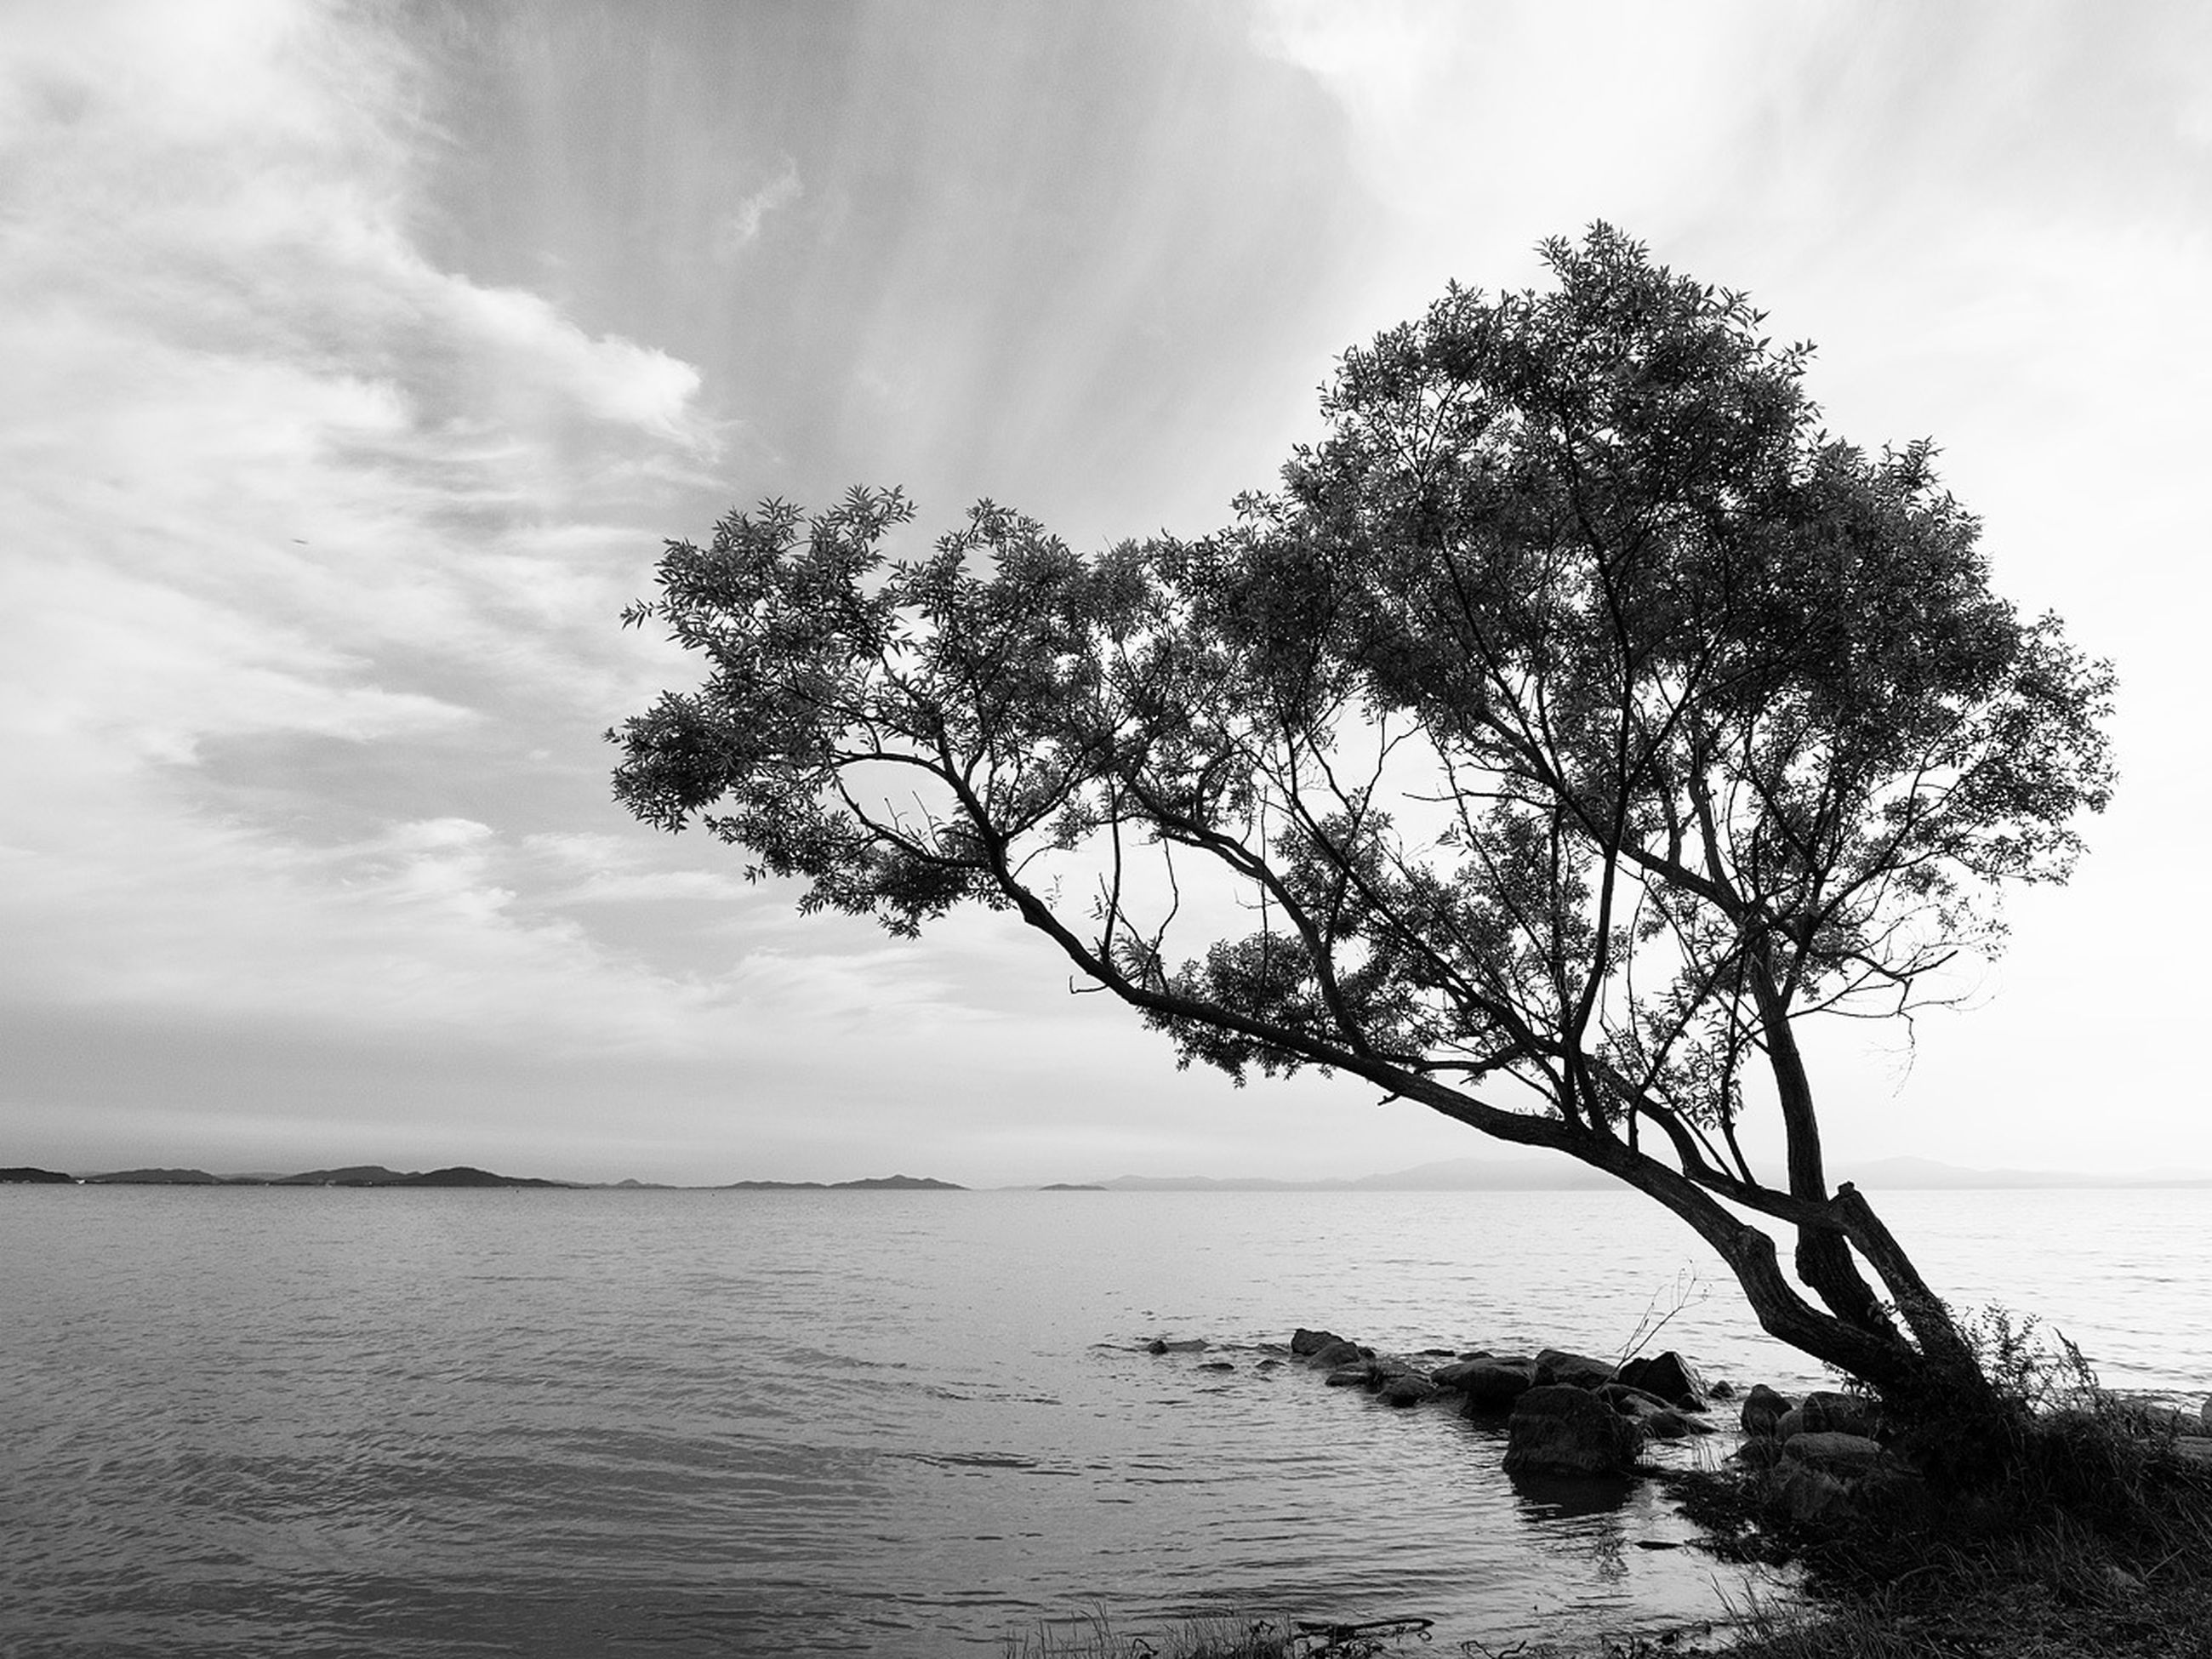 sea, sky, water, tree, horizon over water, tranquility, tranquil scene, scenics, beauty in nature, nature, branch, cloud - sky, cloud, tree trunk, idyllic, growth, outdoors, no people, cloudy, beach